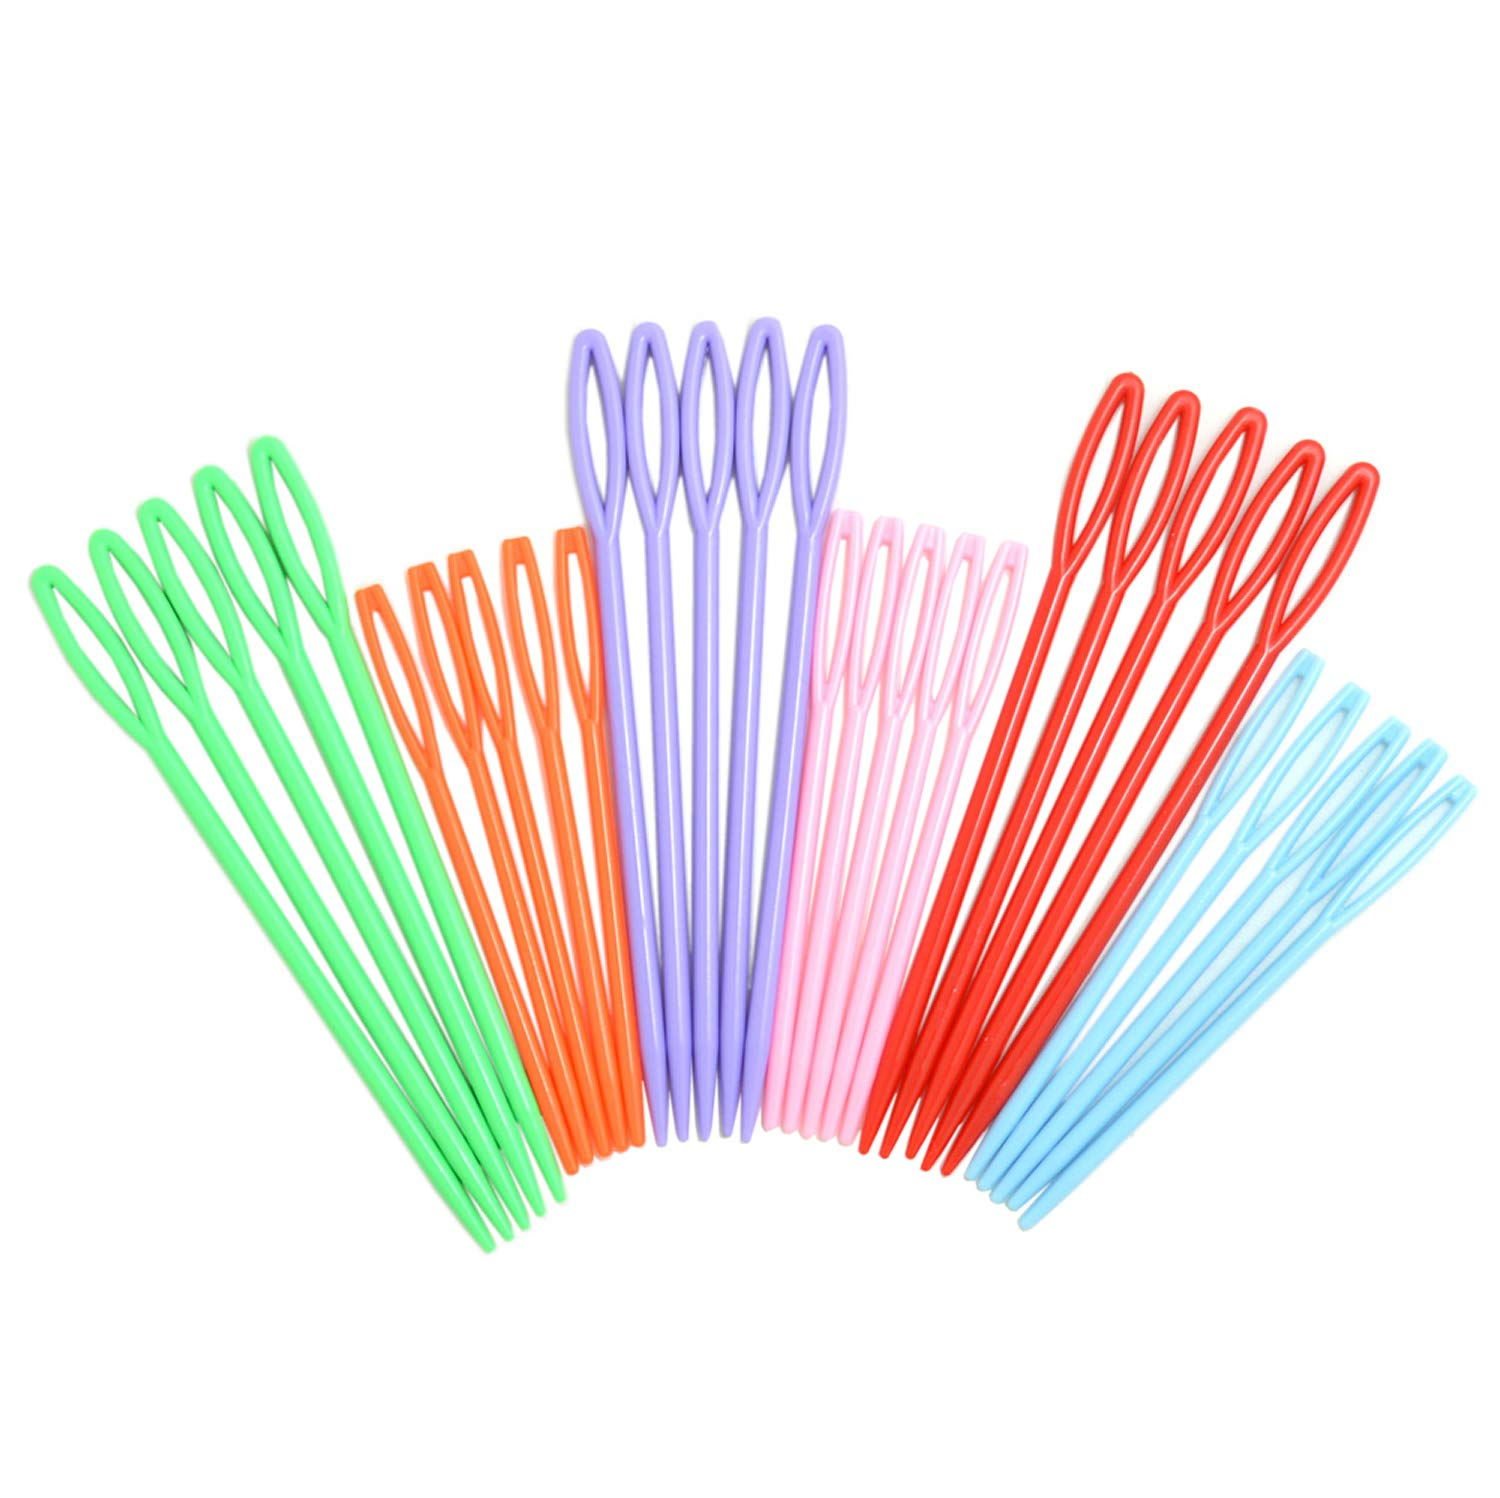 30pcs Colorful Large Eye Plastic Sewing Needles for kid Weave Education BoNaYuanDa 4336926154